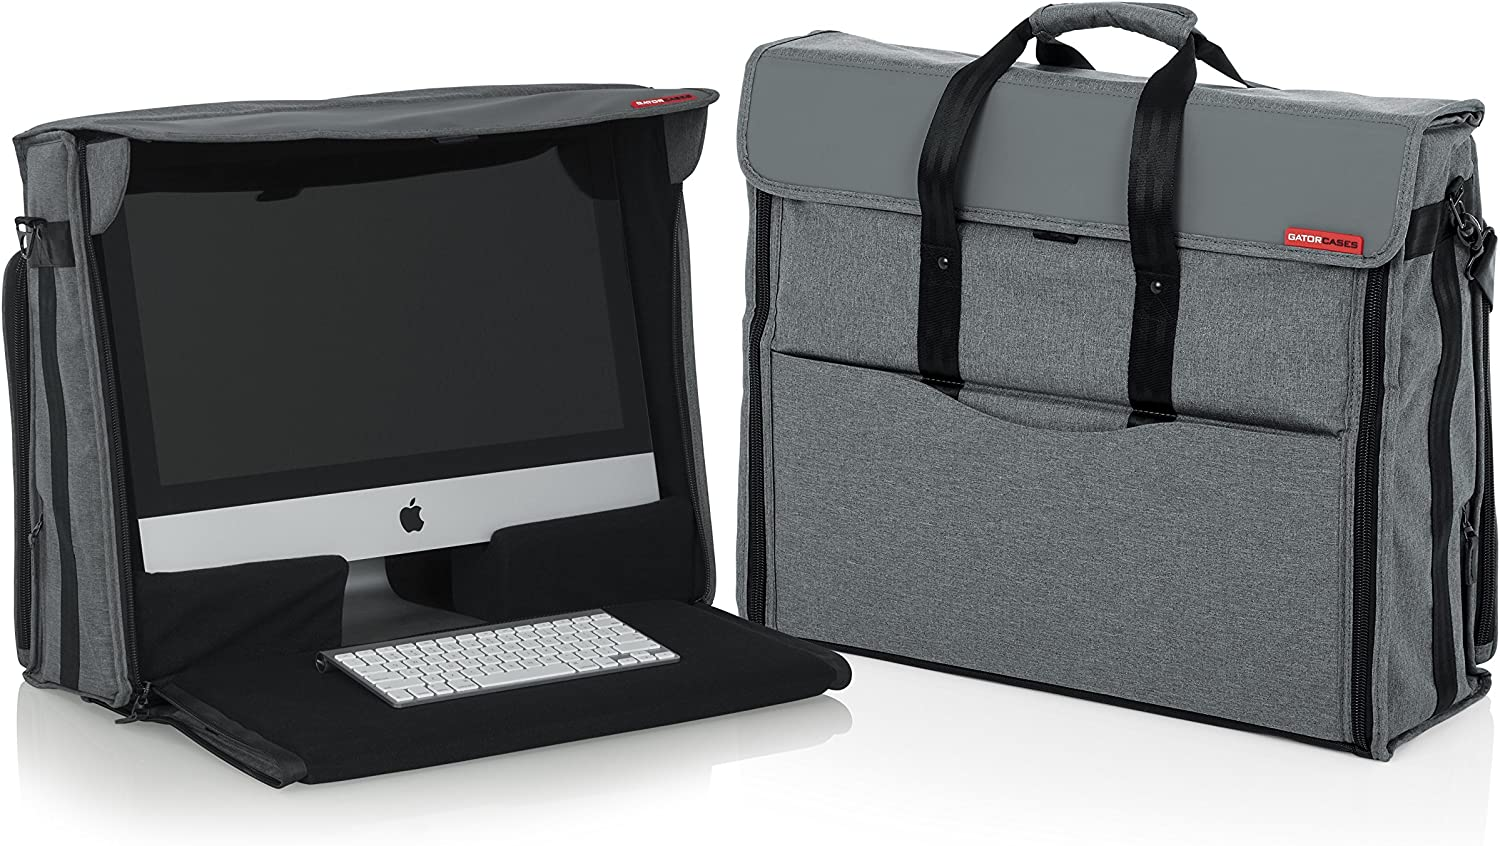 "Gator Cases Creative Pro Series Nylon Carry Tote Bag for Apple 21.5"" iMac Desktop Computer (G-CPR-IM21)"